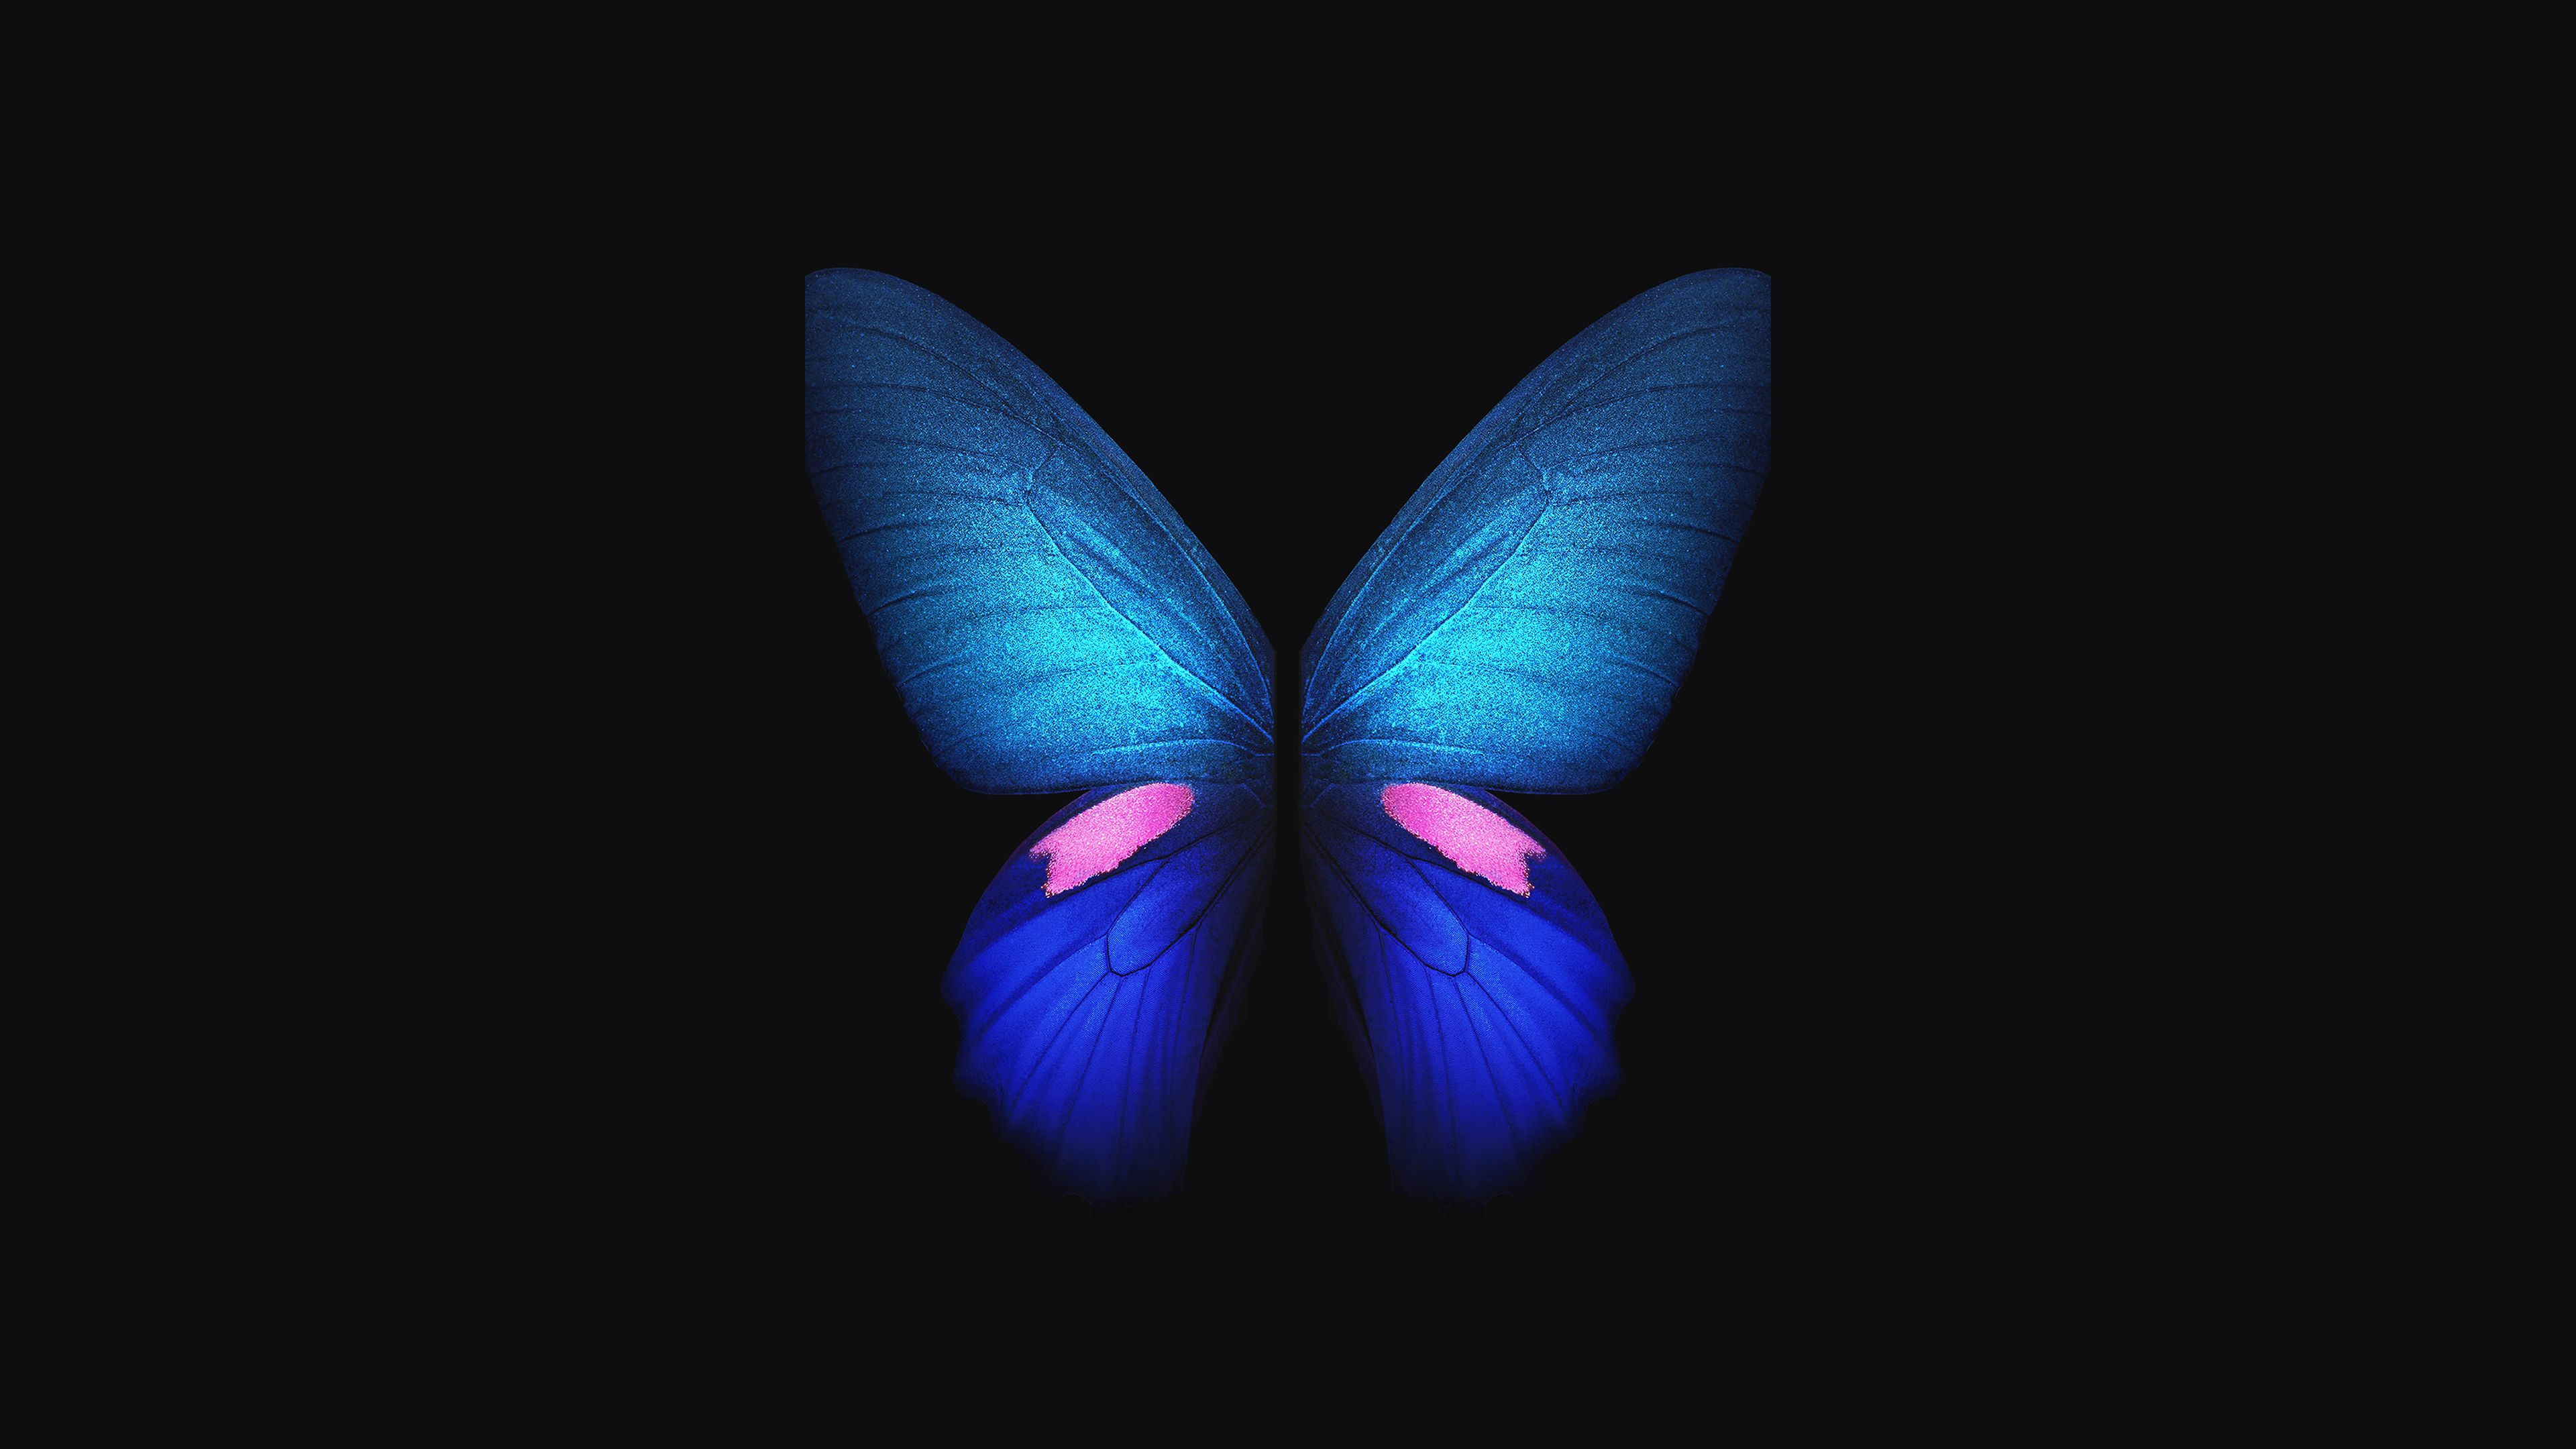 Butterfly 4k Wallpapers Top Free Butterfly 4k Backgrounds Wallpaperaccess